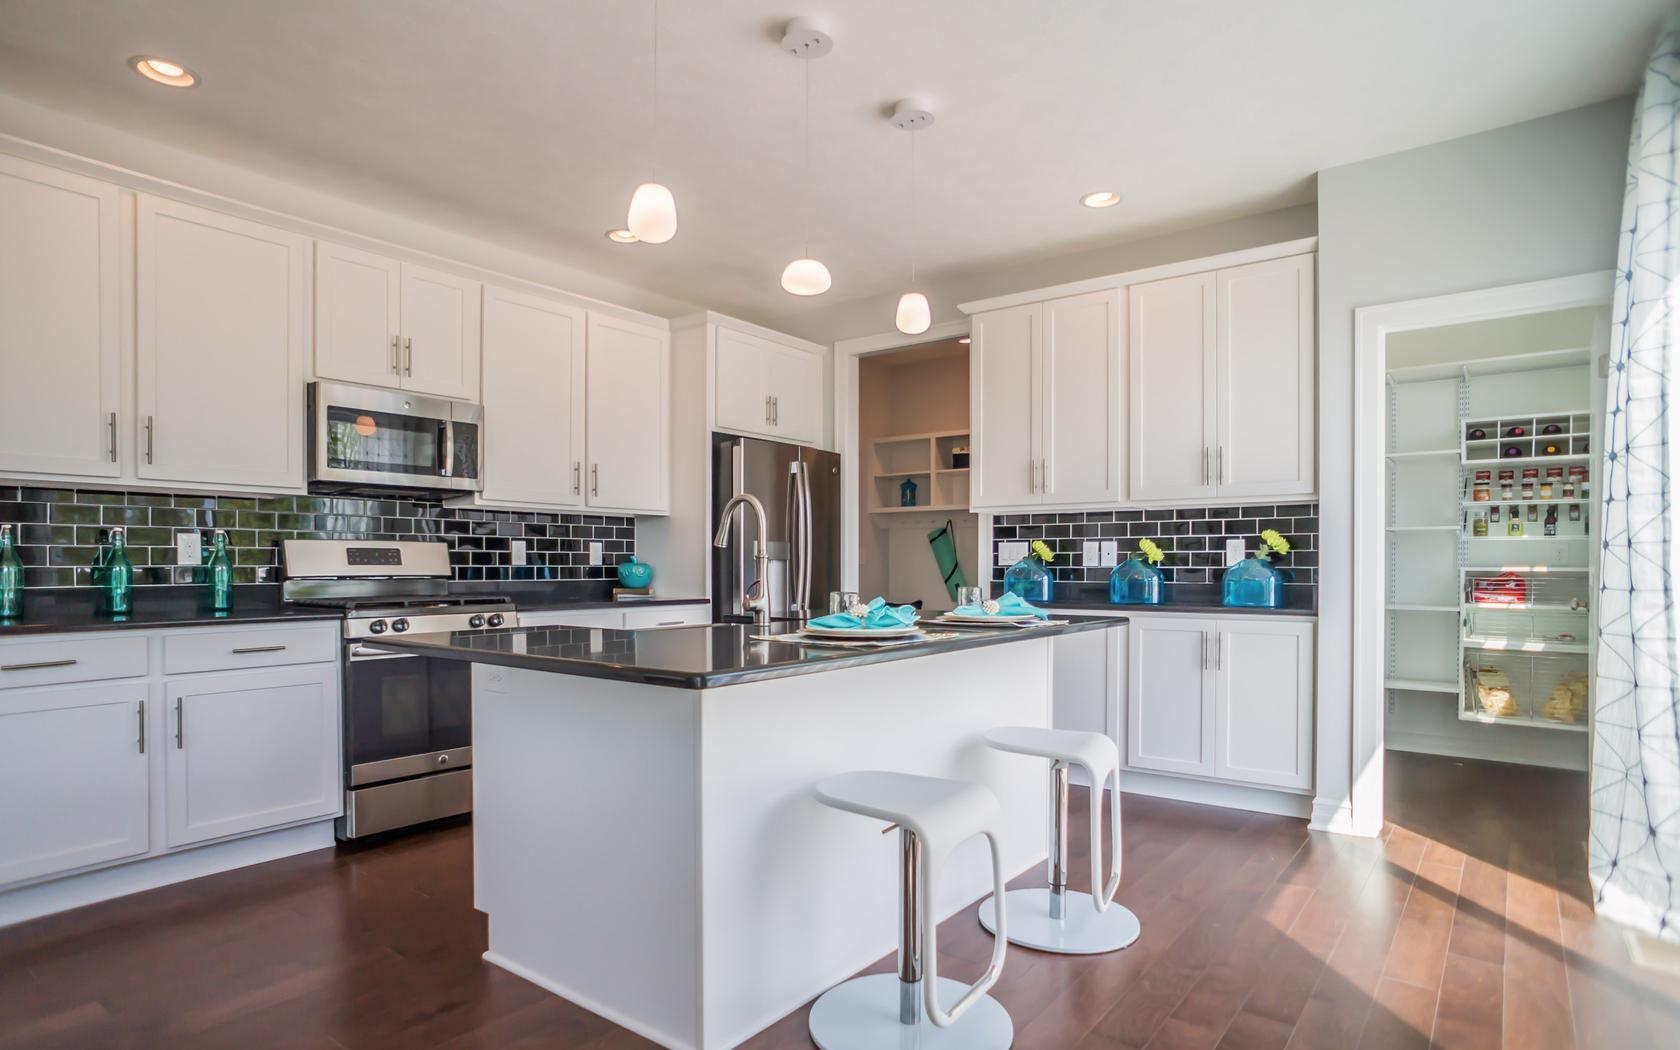 Kitchen featured in the Mackinaw By Mayberry Homes in Lansing, MI